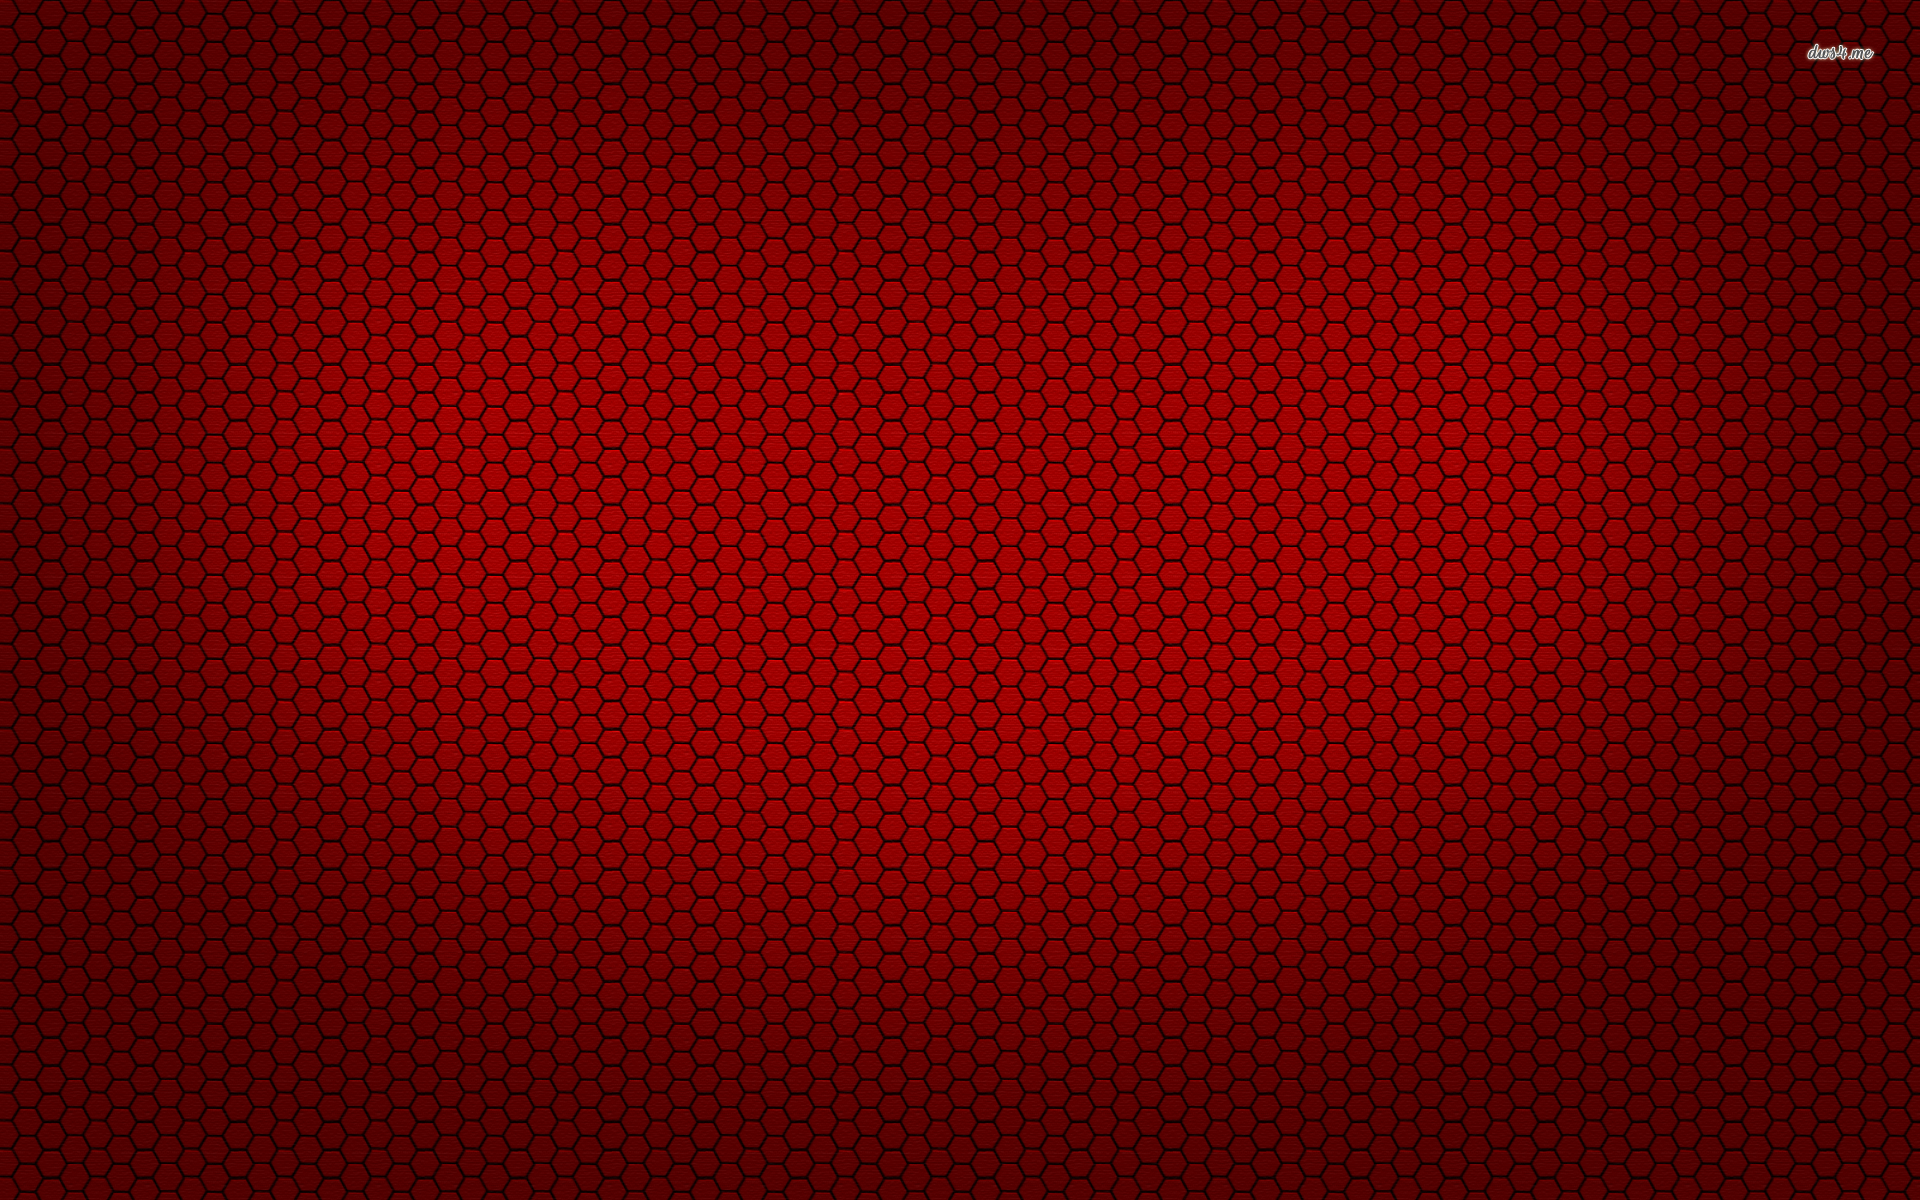 Red Honeycomb Pattern Abstract Wallpaper 1920x1200 px Free Red hexagon pattern wallpaper | Wallpapers Crazy